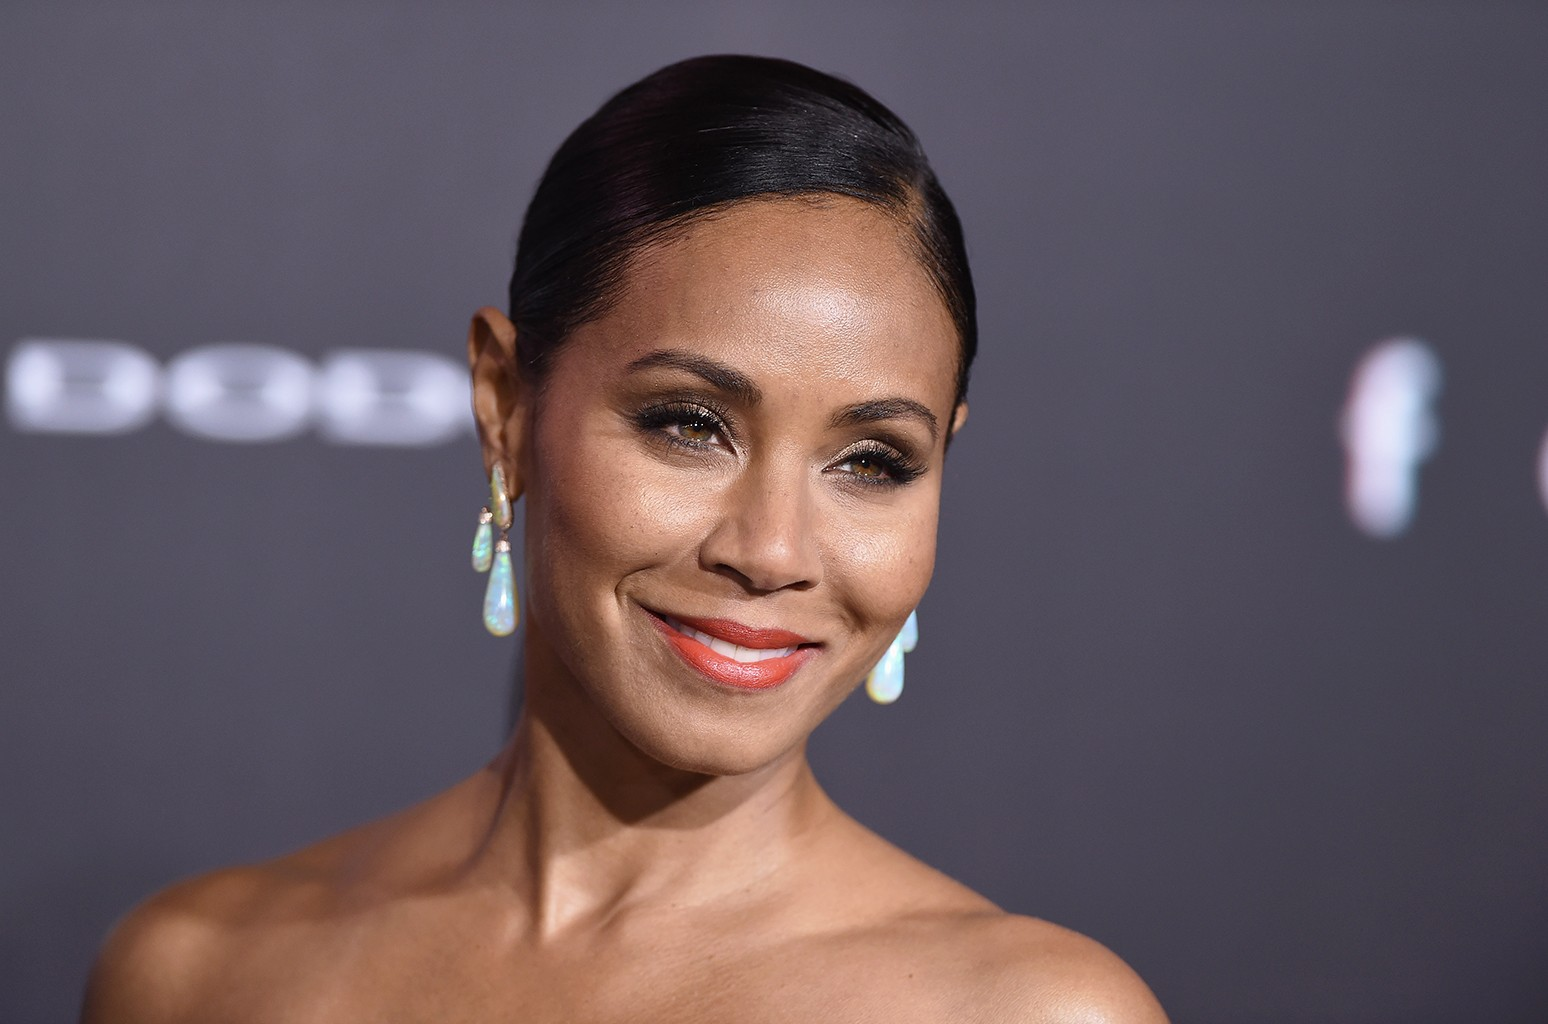 Jada Pinkett Smith at TCL Chinese Theatre on Feb. 24, 2015 in Hollywood, Calif.